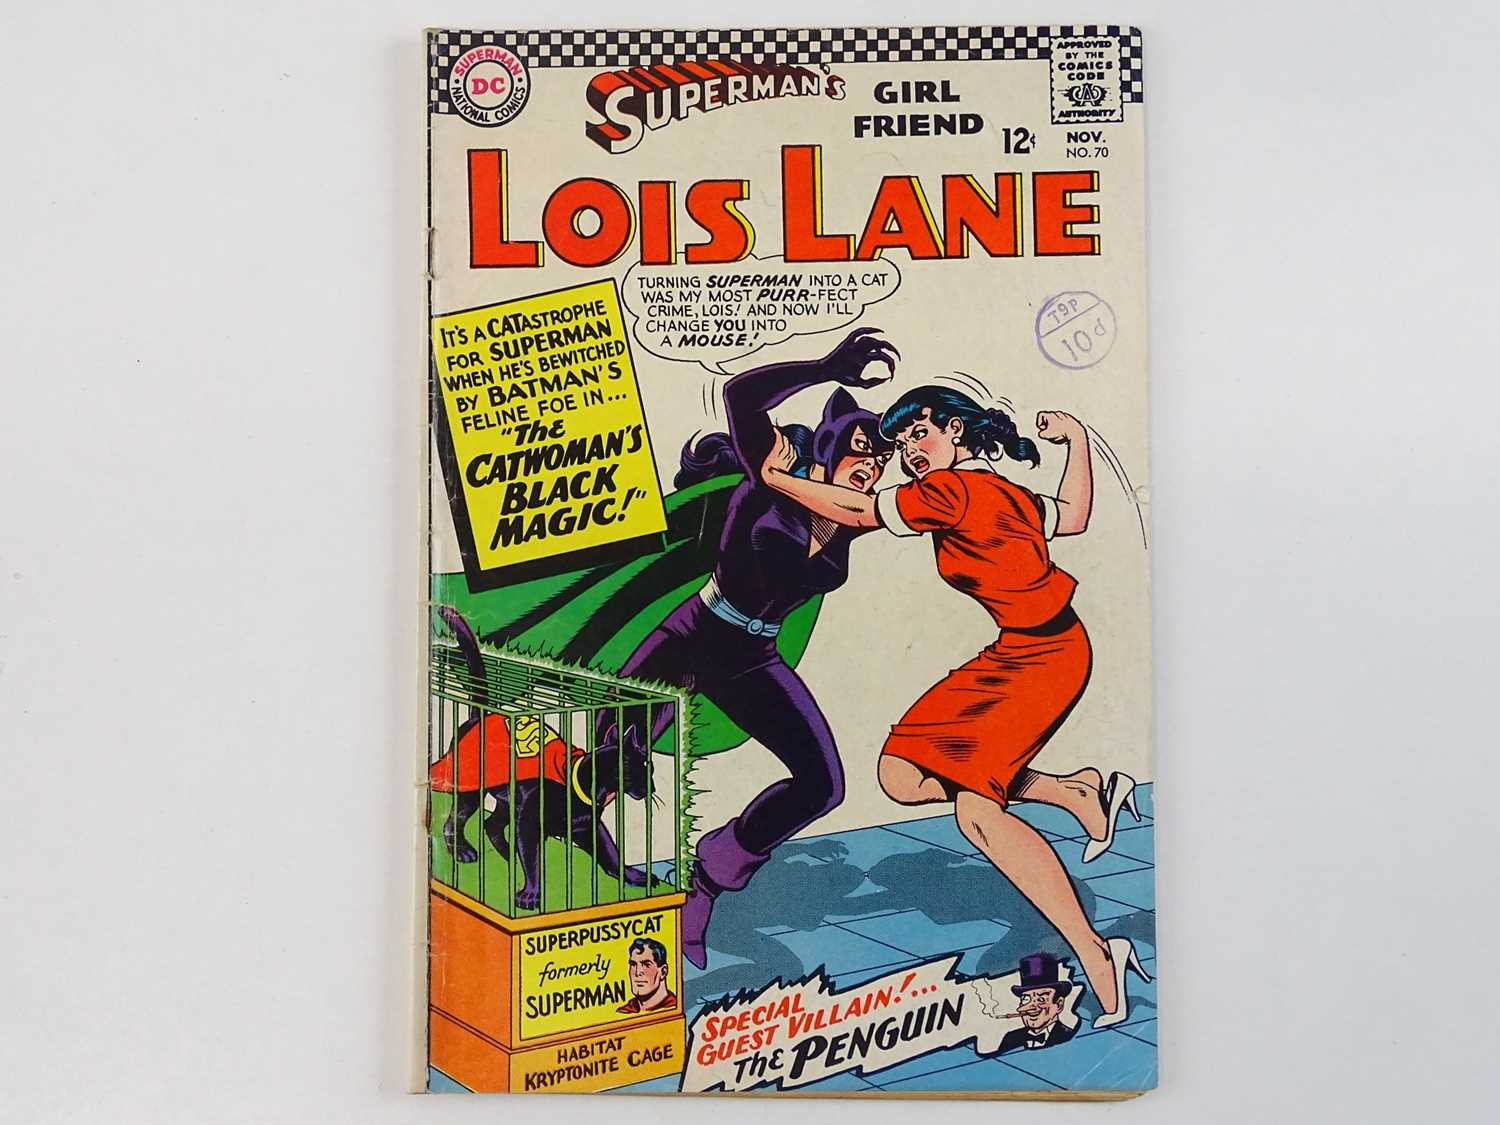 SUPERMAN'S GIRLFRIEND: LOIS LANE #70 - (1966 - DC - UK Cover Price) - KEY Book - First Silver Age